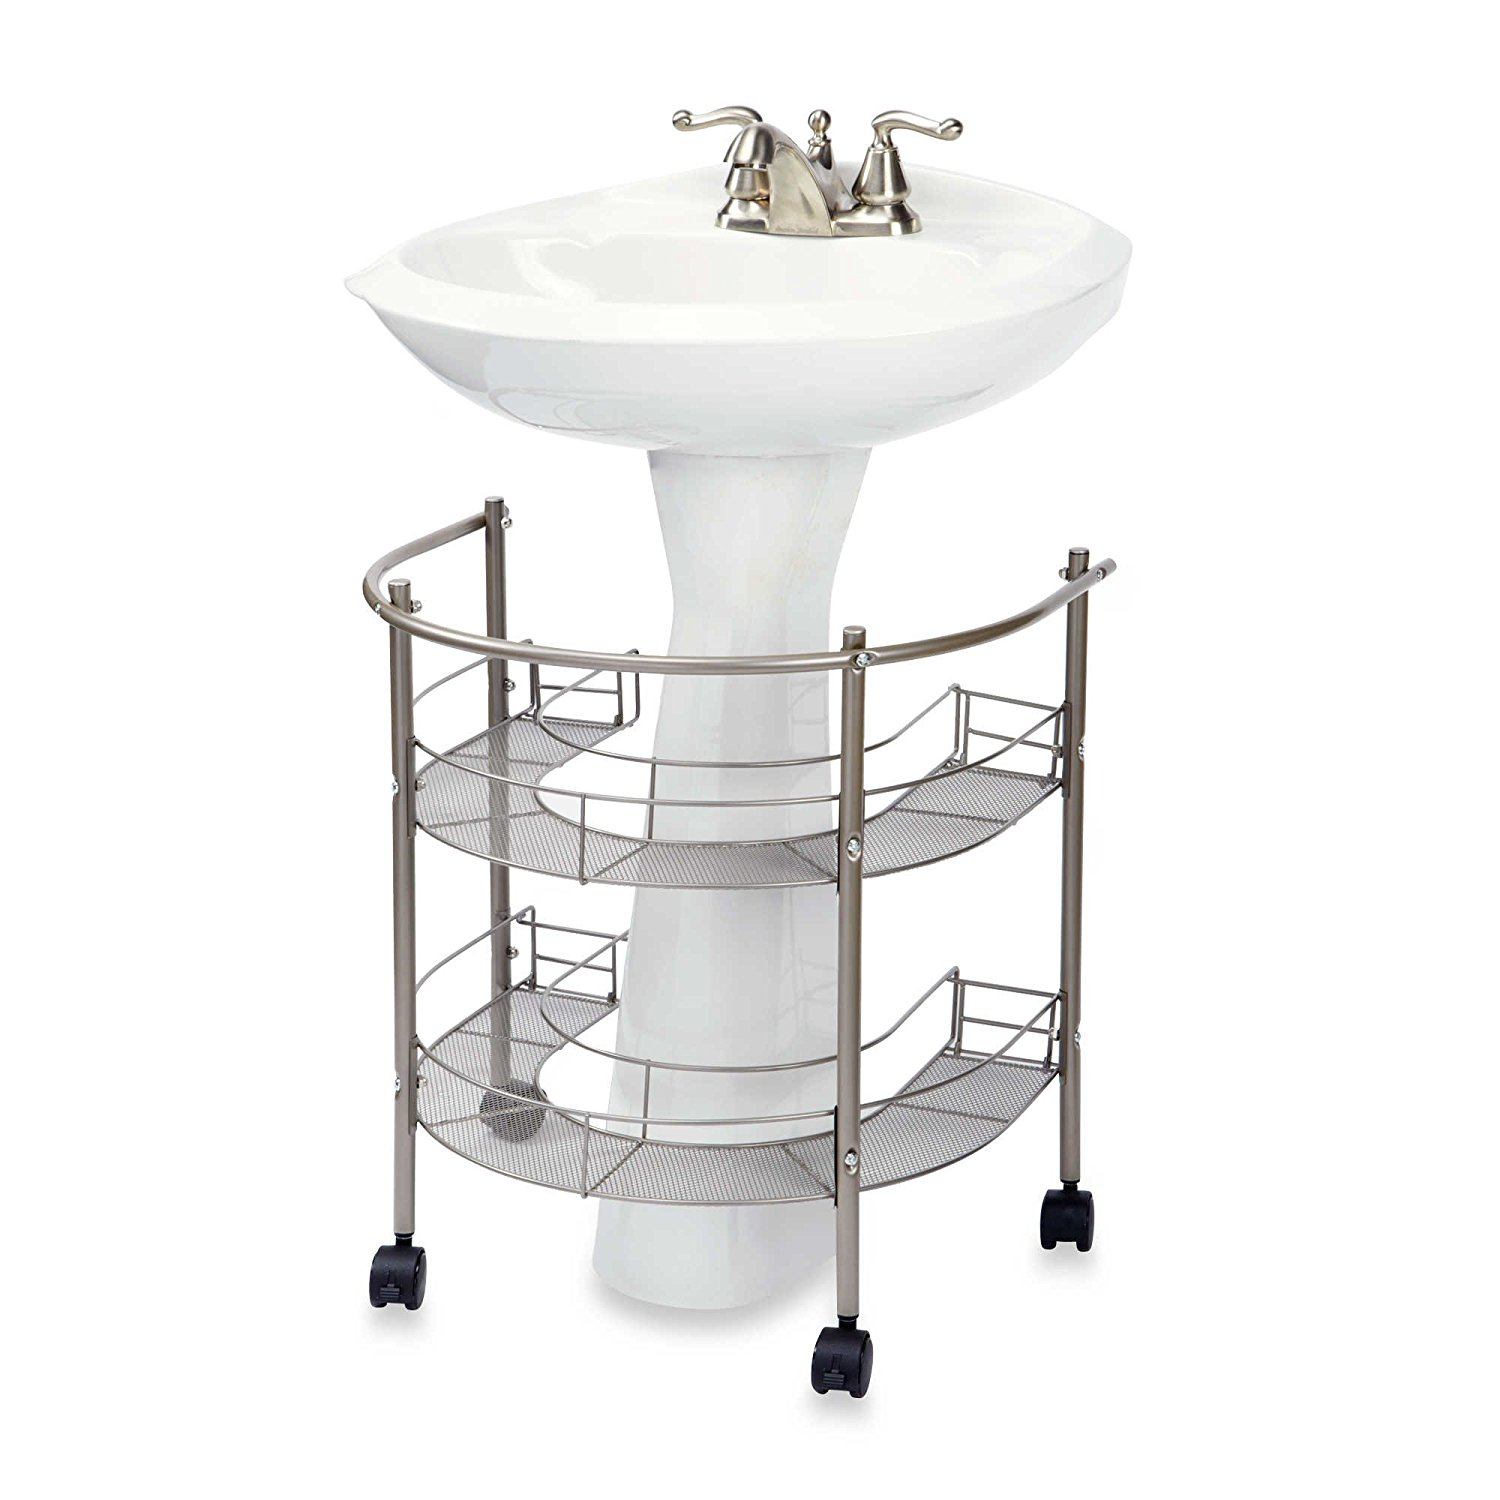 Rolling Organizer For Pedestal Sink � Two Tiers Wrap-Around Storage w  Smooth Glide Casters, Easy to Assemble,... by